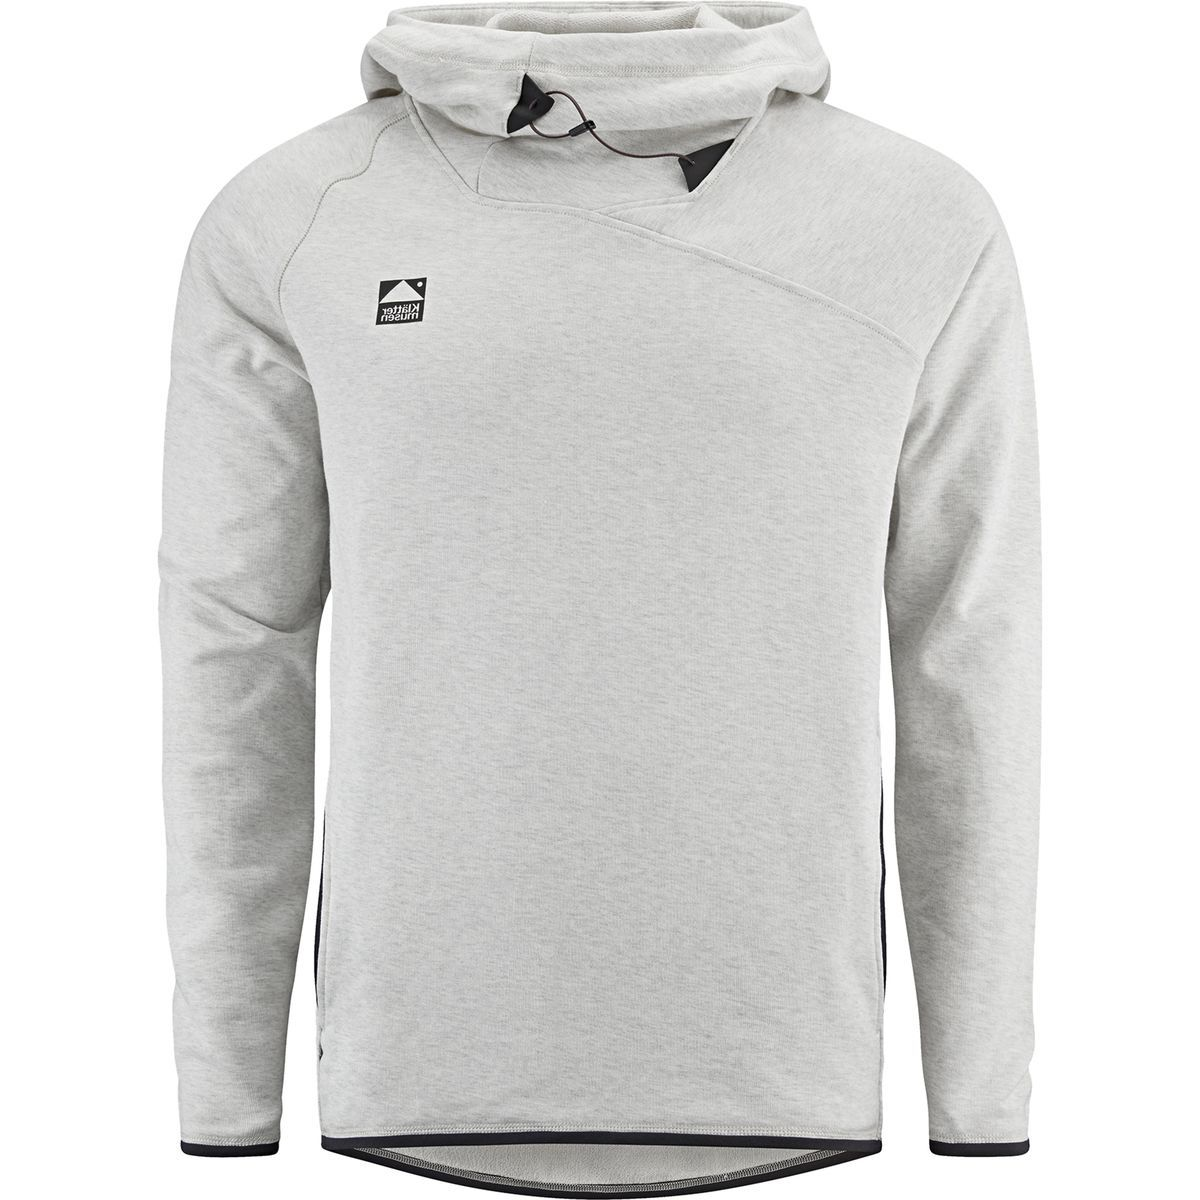 Klattermusen Falen Hooded Sweatshirt - Men's